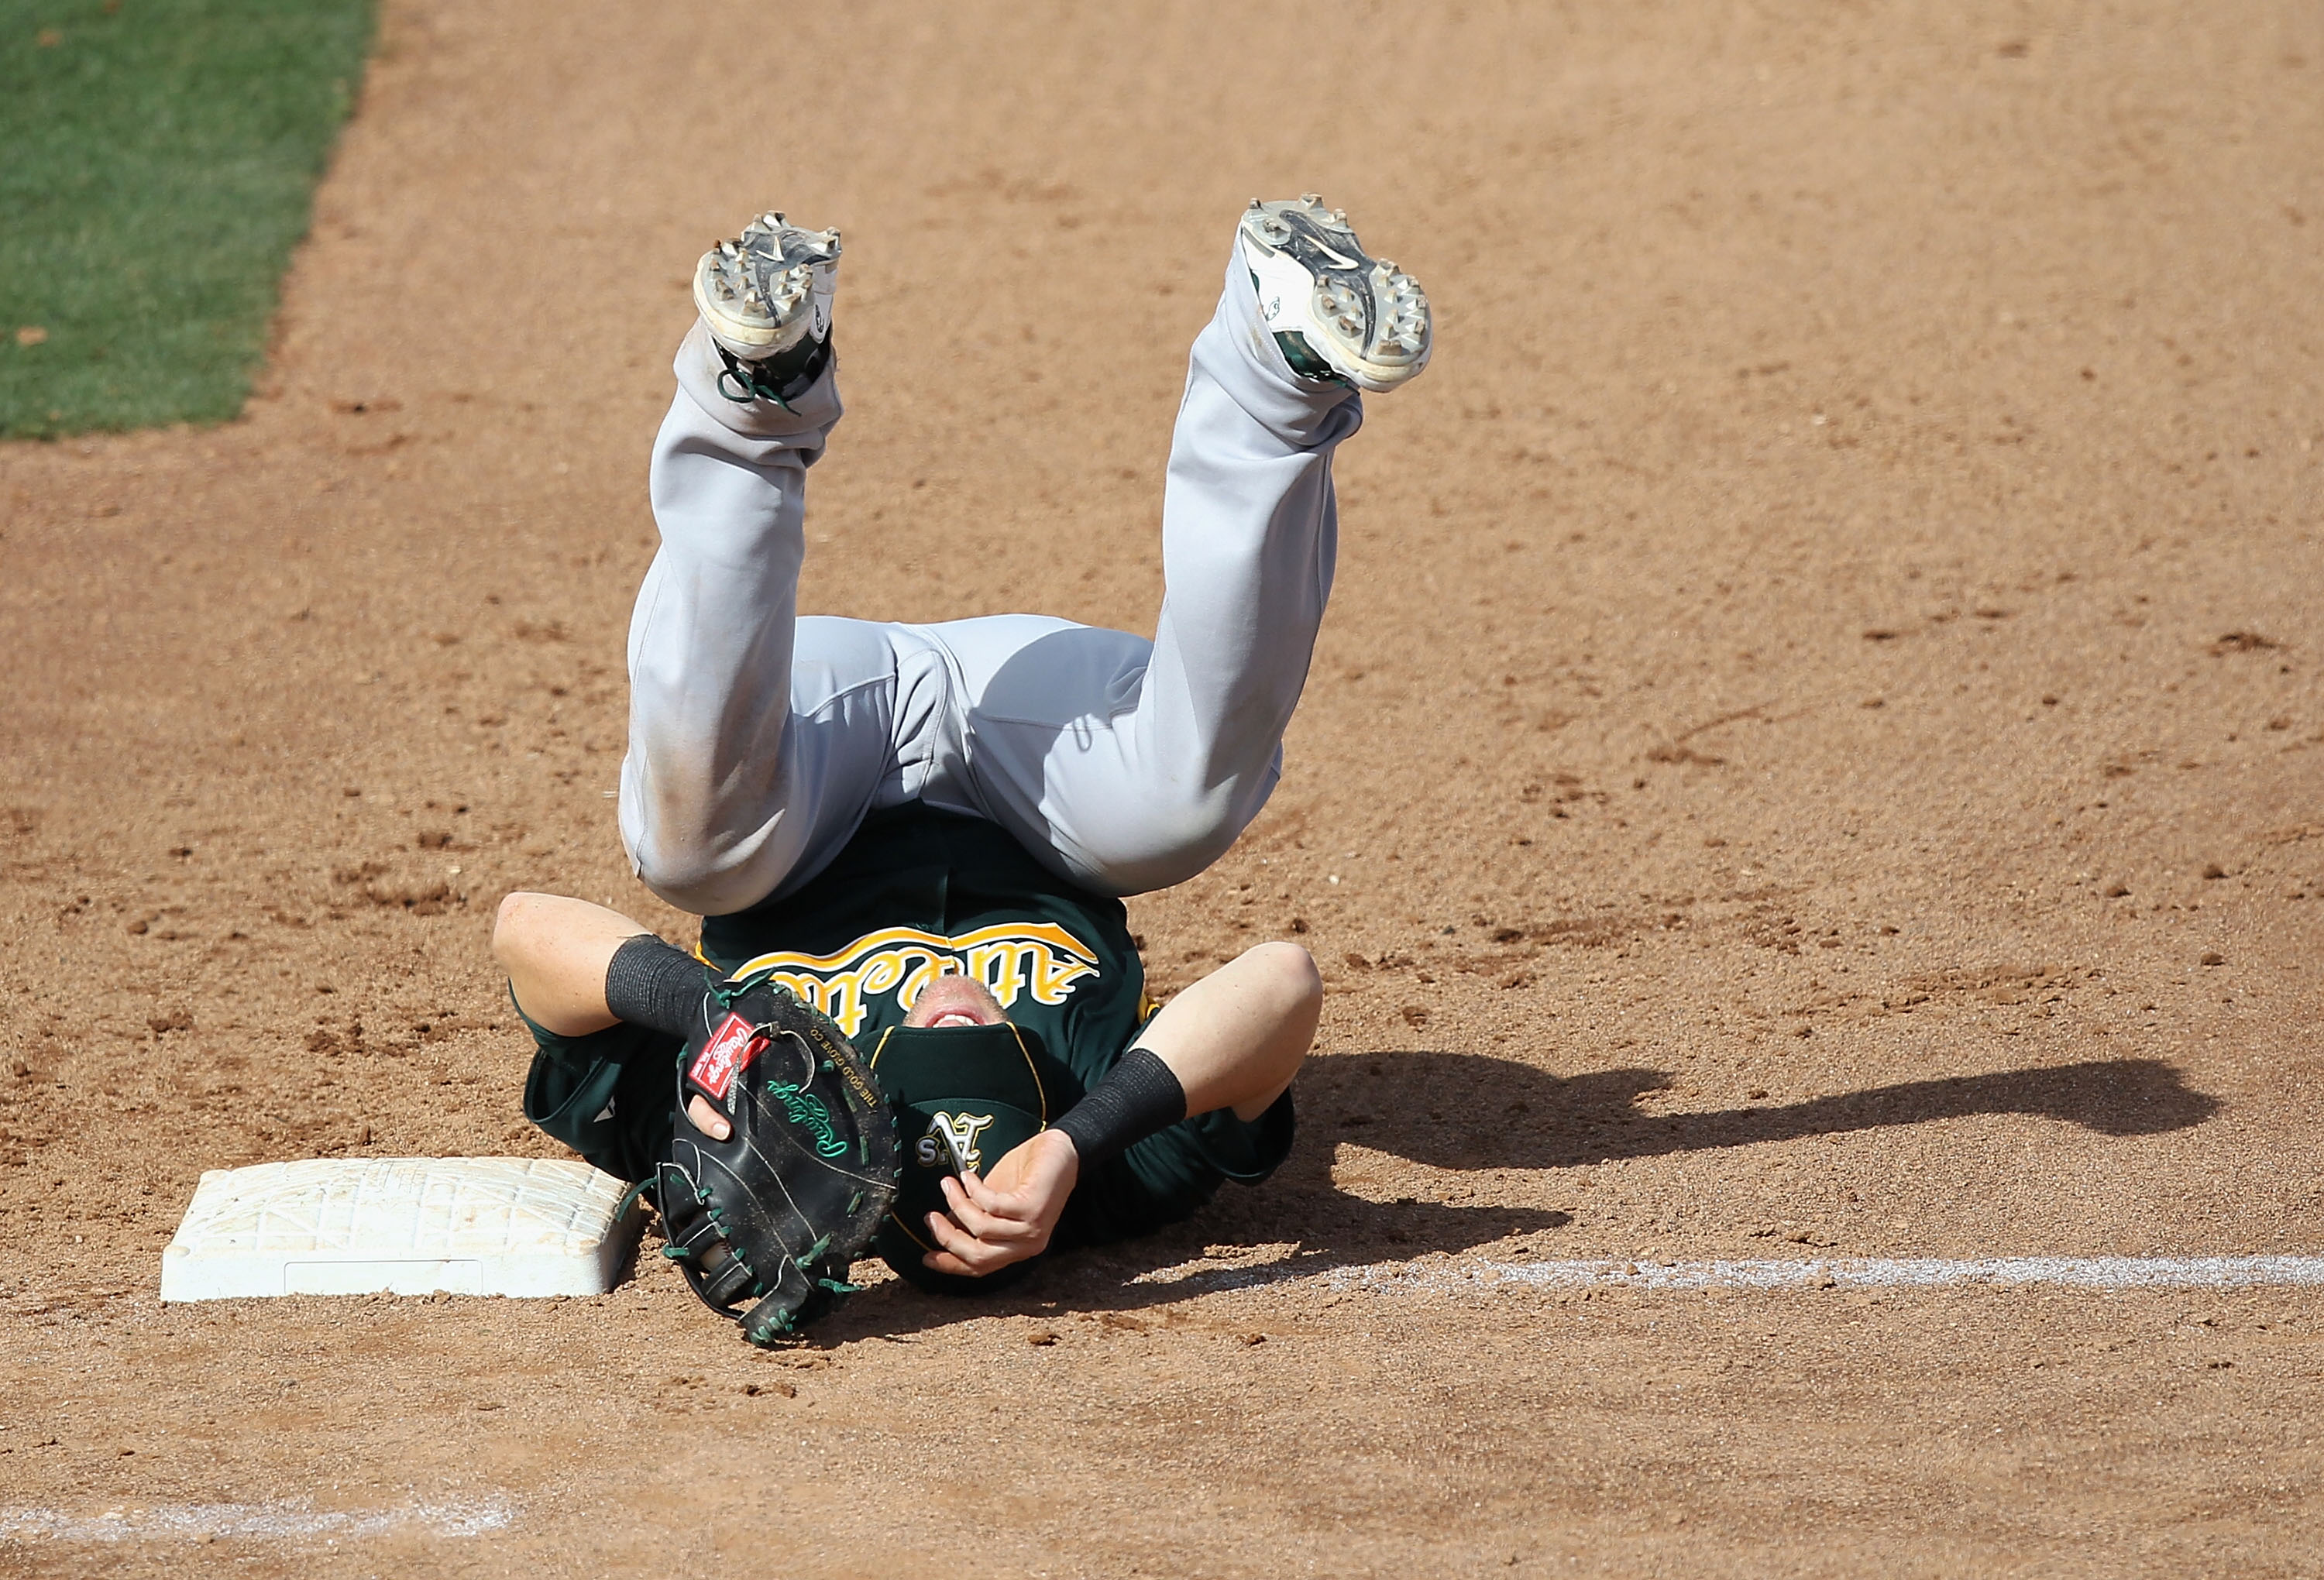 PEORIA, AZ - MARCH 06:  Infielder Daric Barton #10 of the Oakland Athletics lands on his back after a collision with Logan Forsythe (not pictured) of the San Diego Padres during the third inning of the spring training game at Peoria Stadium on March 6, 20